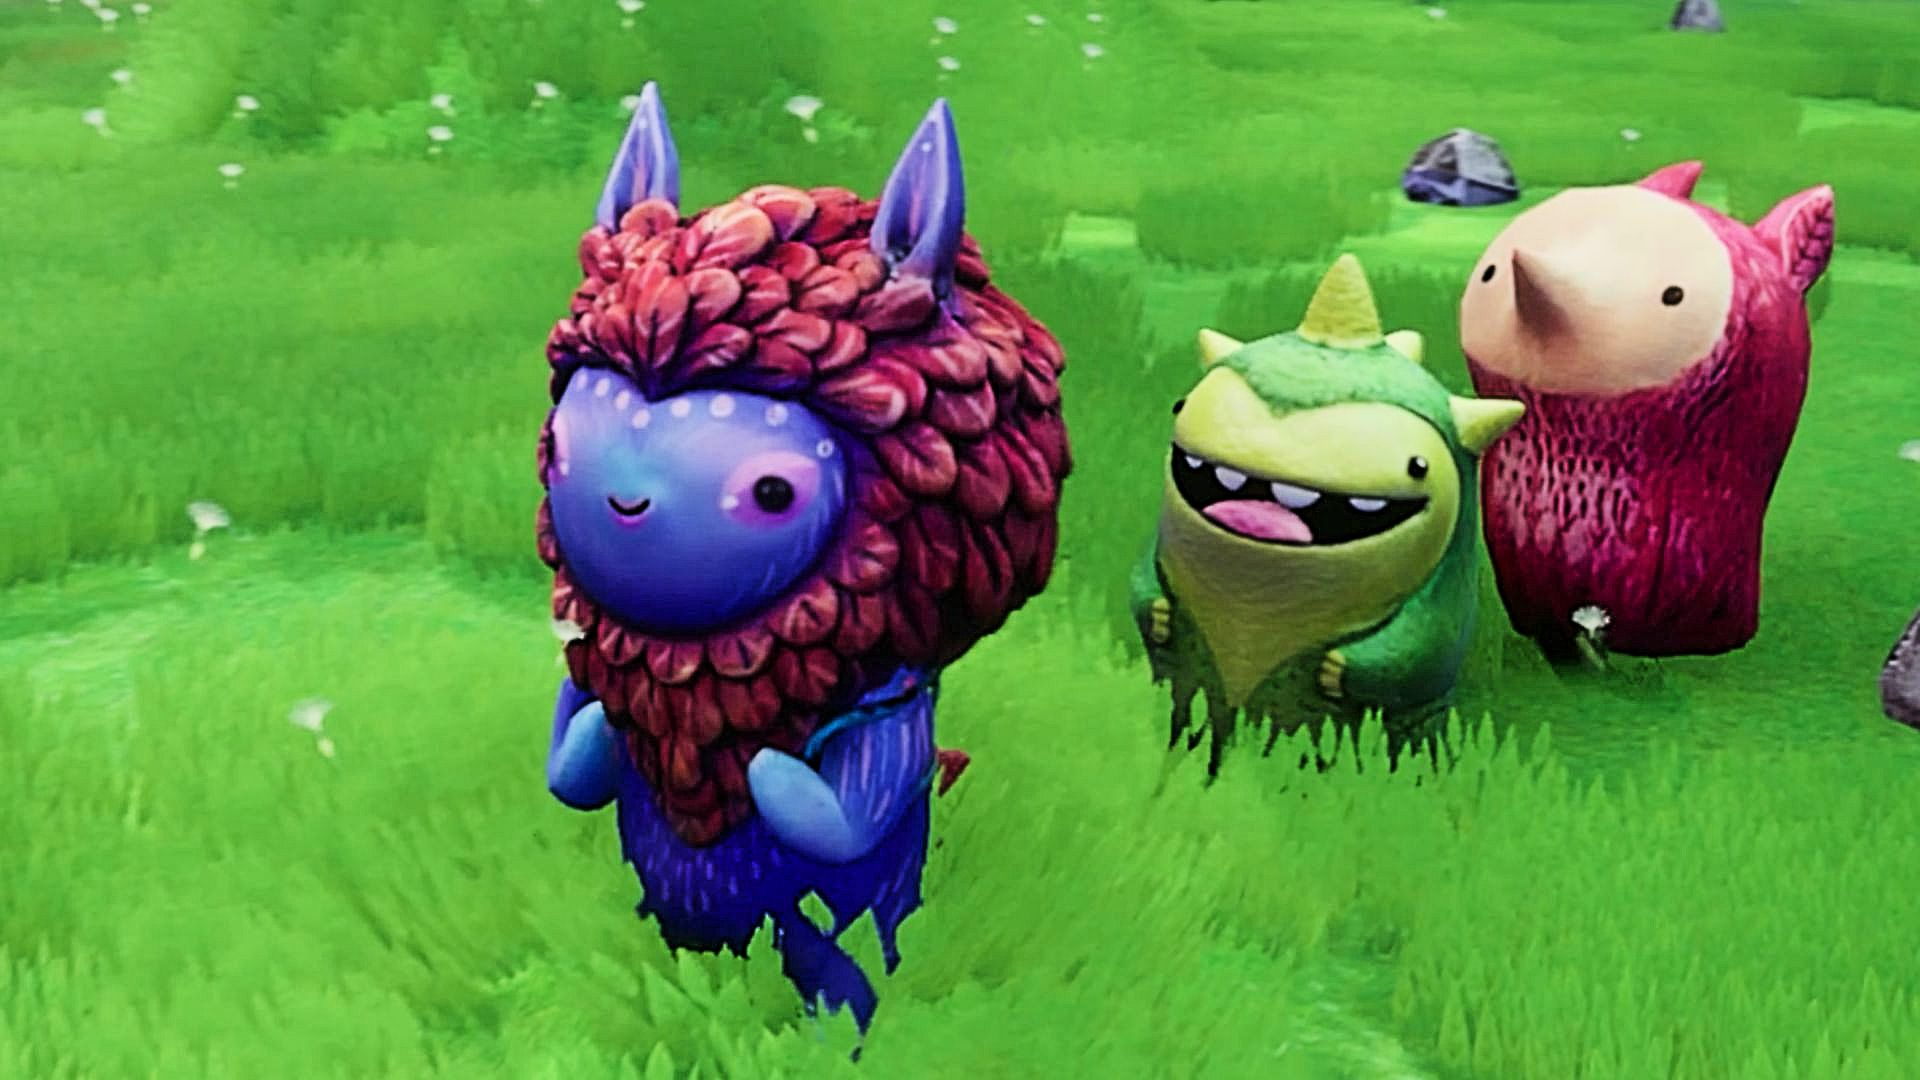 Making It In Unreal Bringing Whimsical Artwork To Life In Oddfauna Secret Of The Terrabeast Pcgamesn